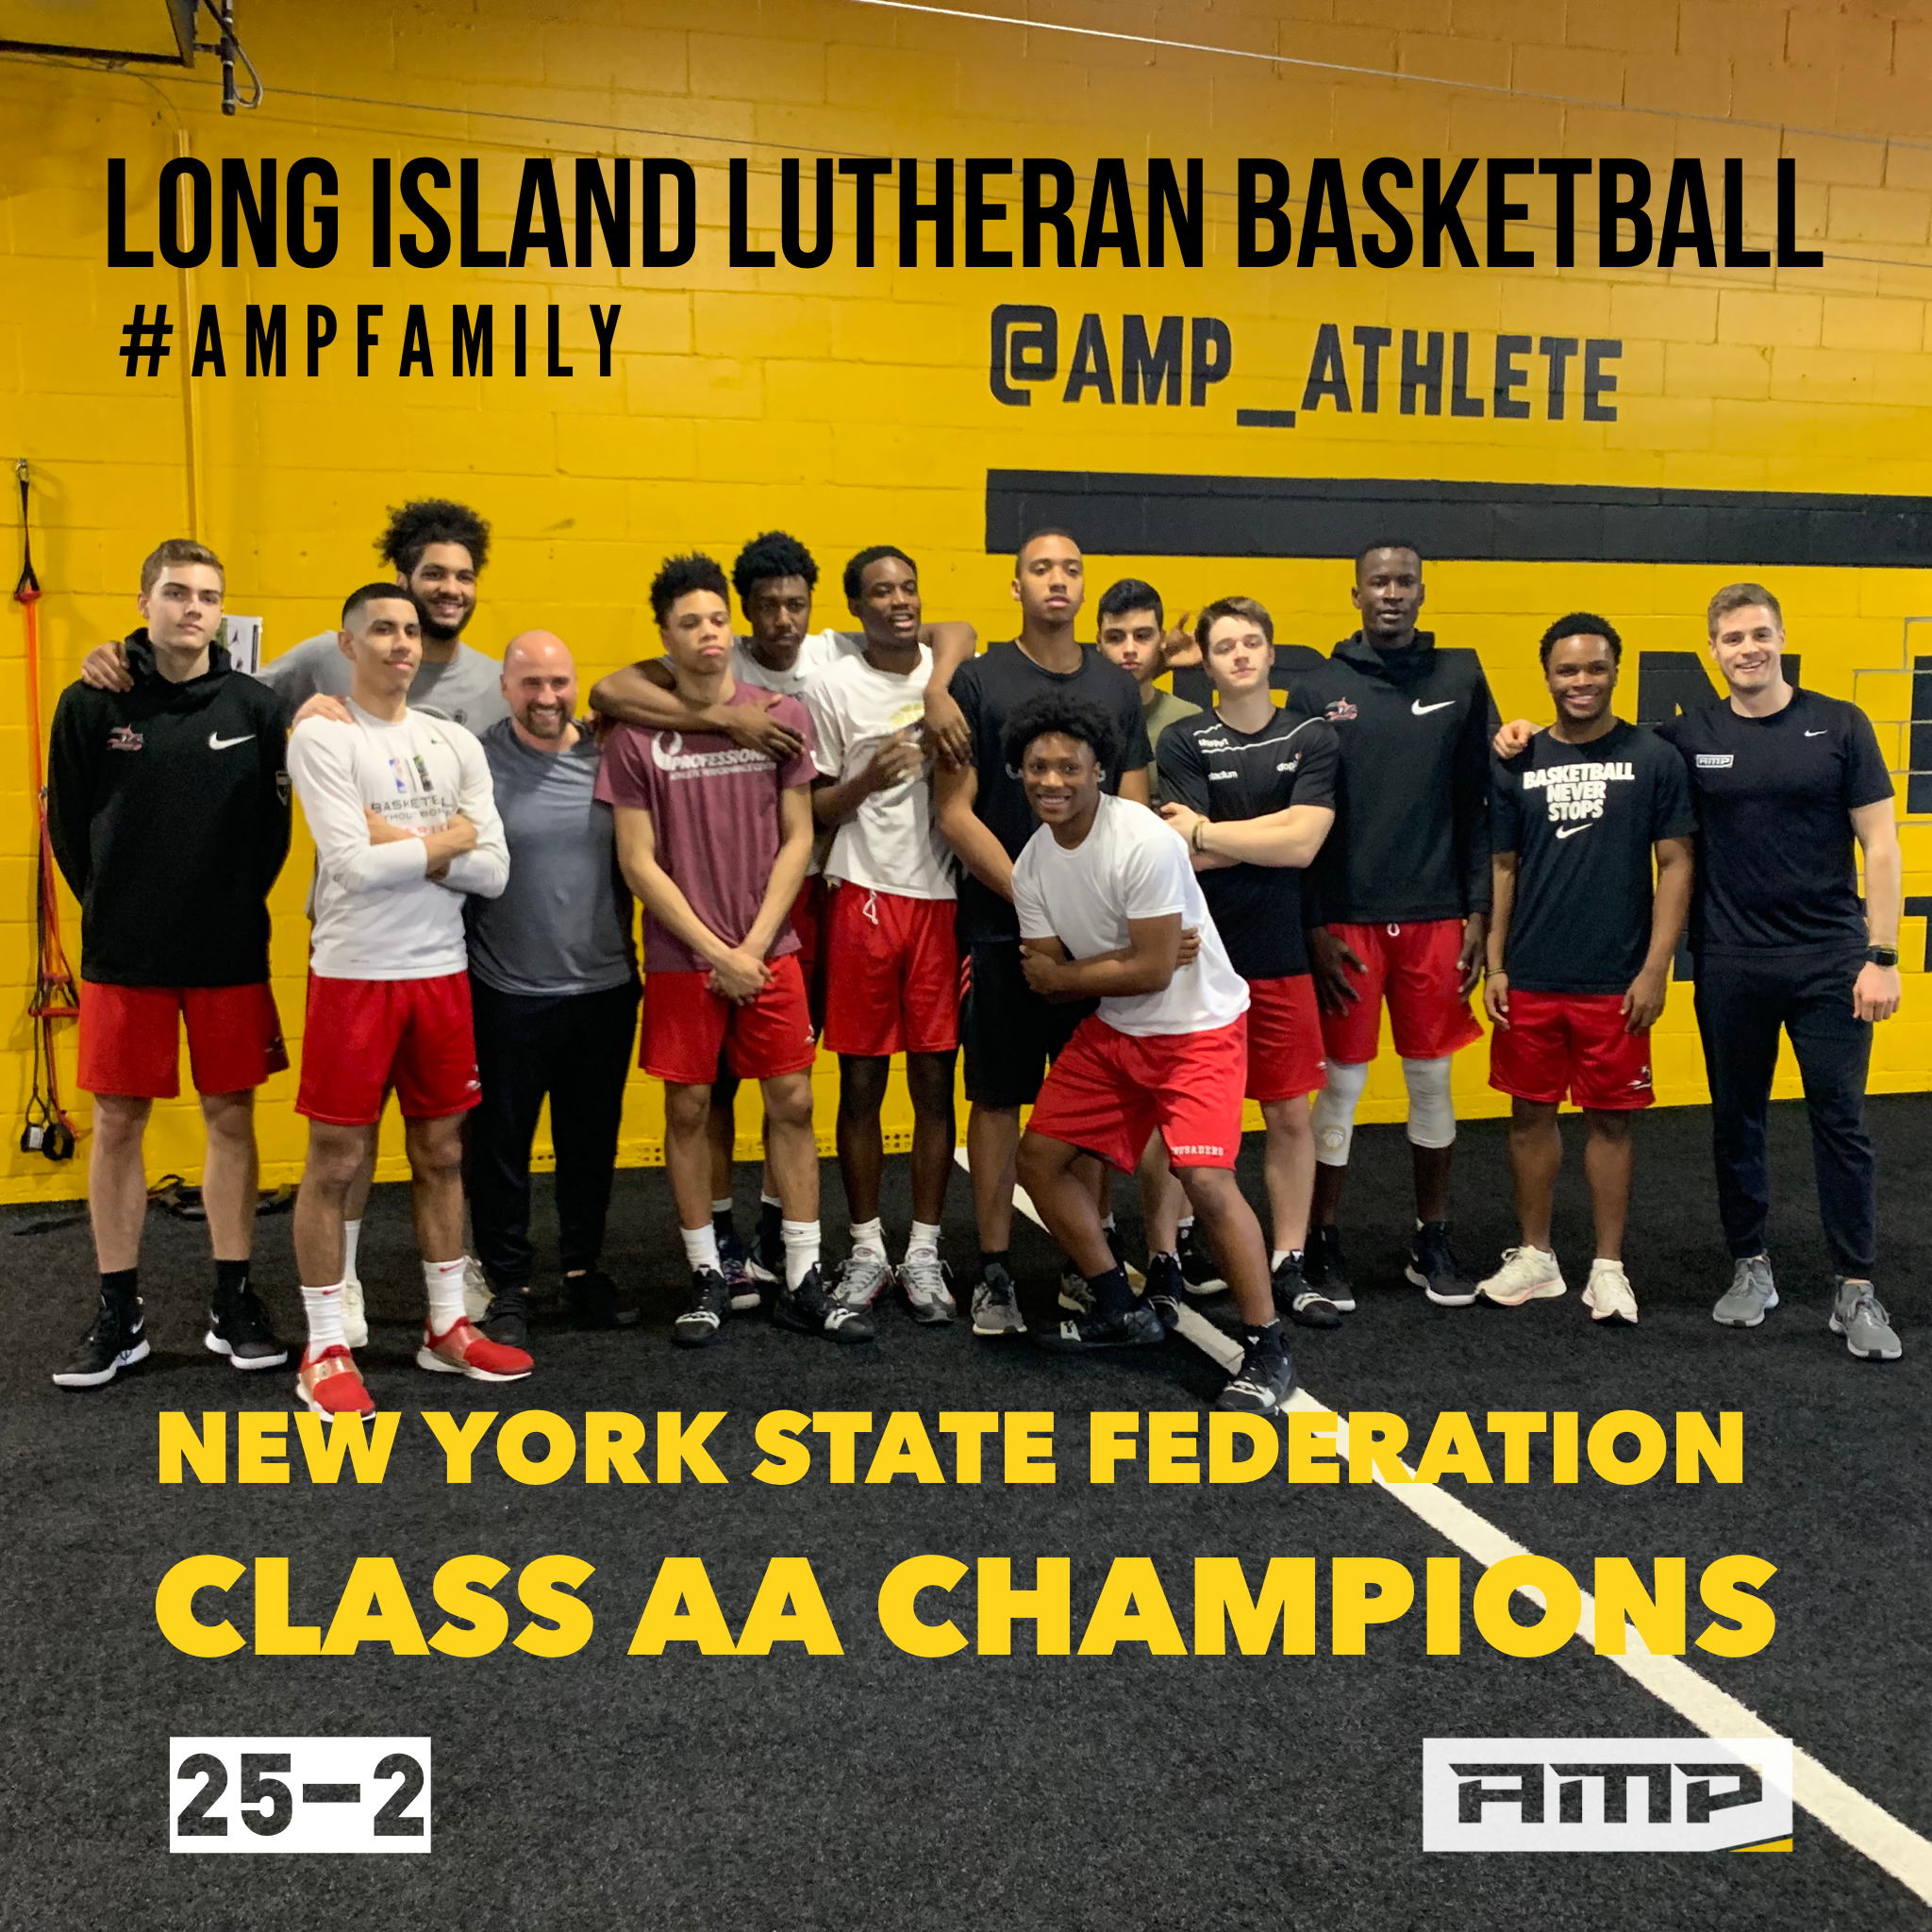 The LuHi crew after their last training session before heading up to Glens Falls, NY to compete in the NY State Federation Class AA Championship Tournament.